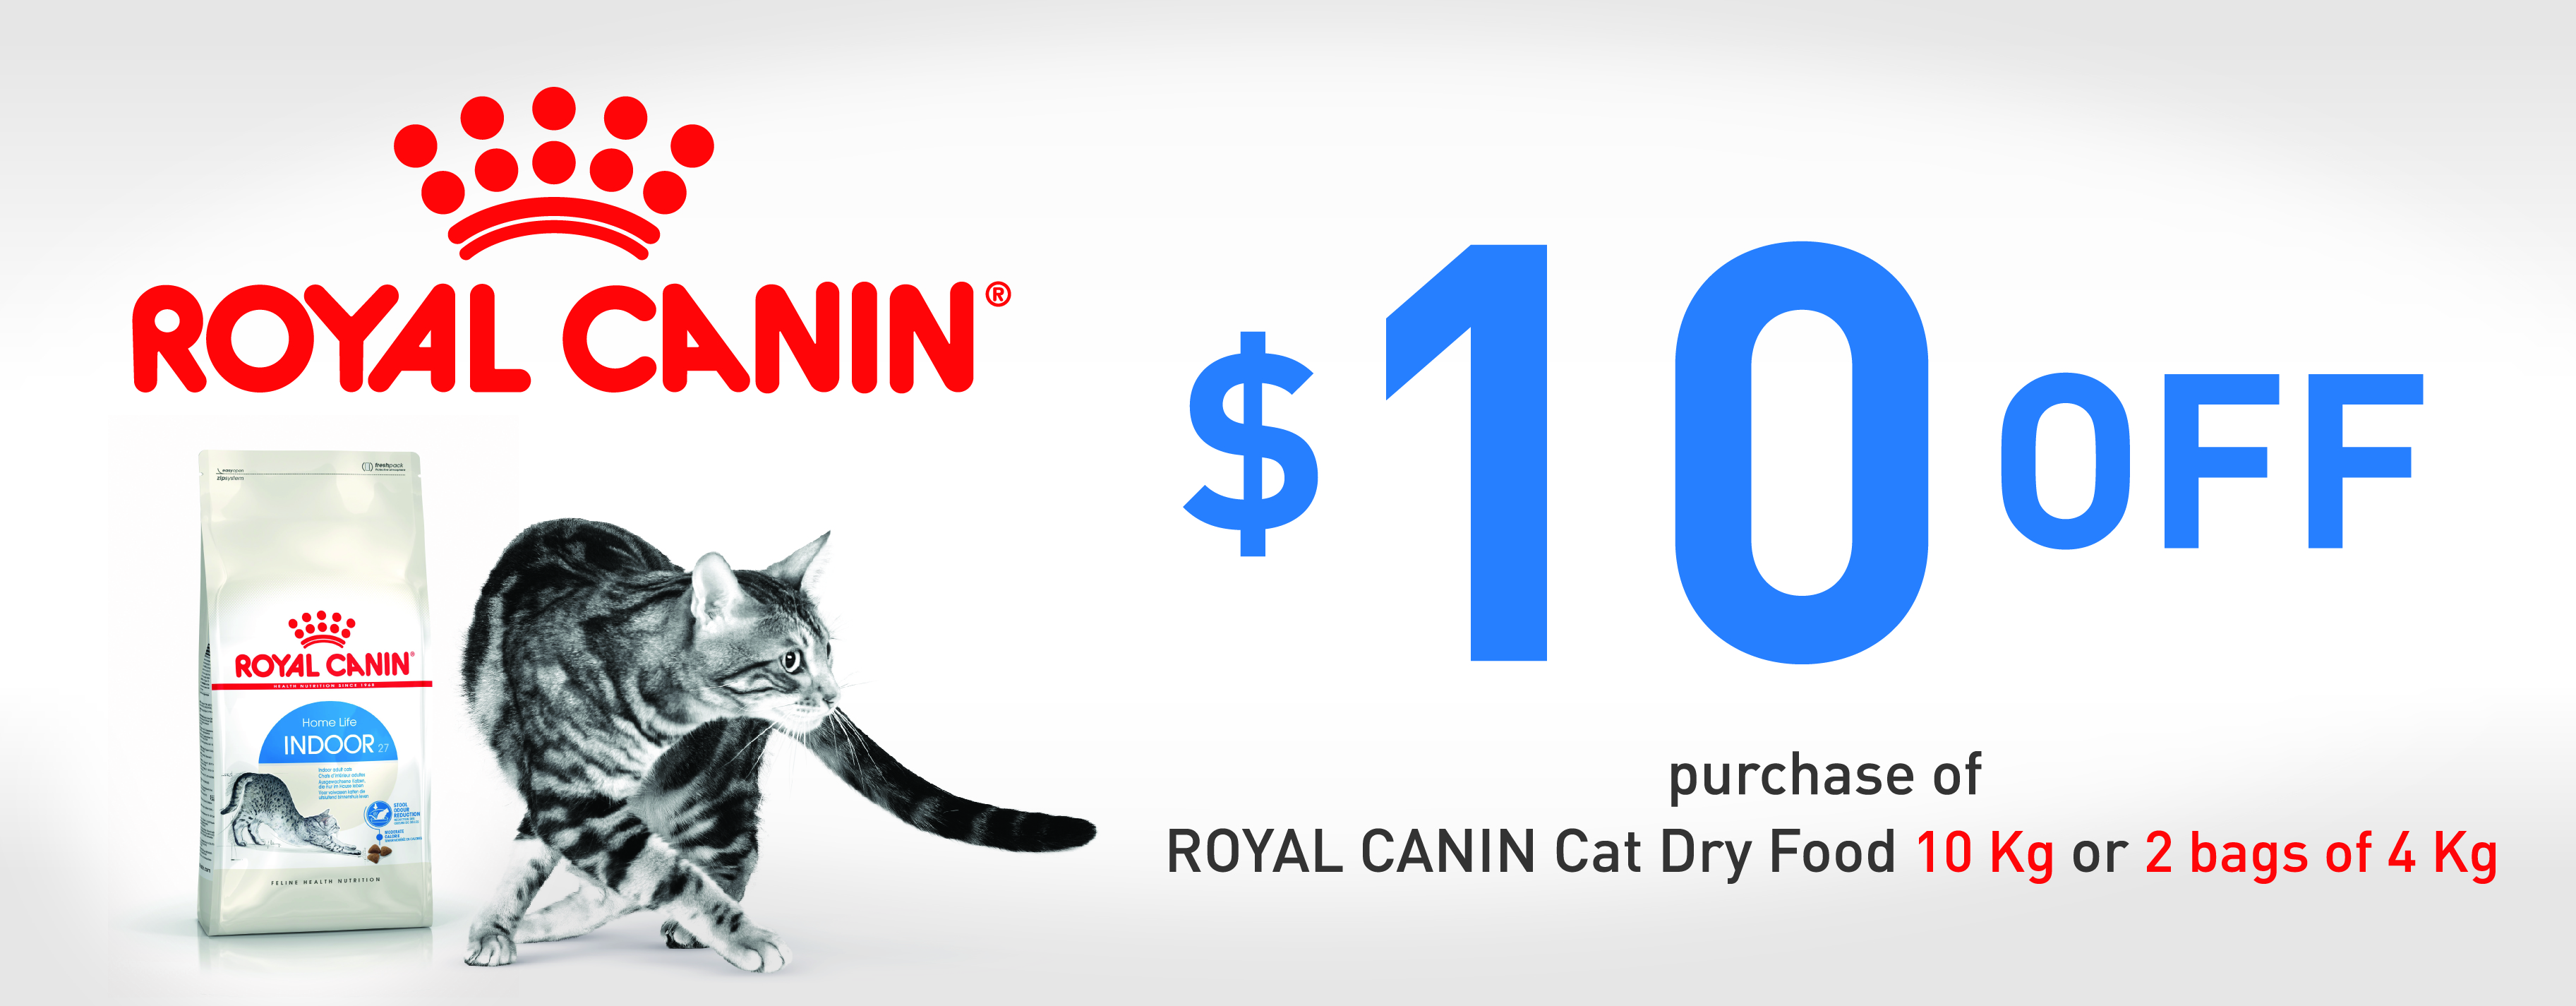 Royal Canin Cat Dry Food Promotion